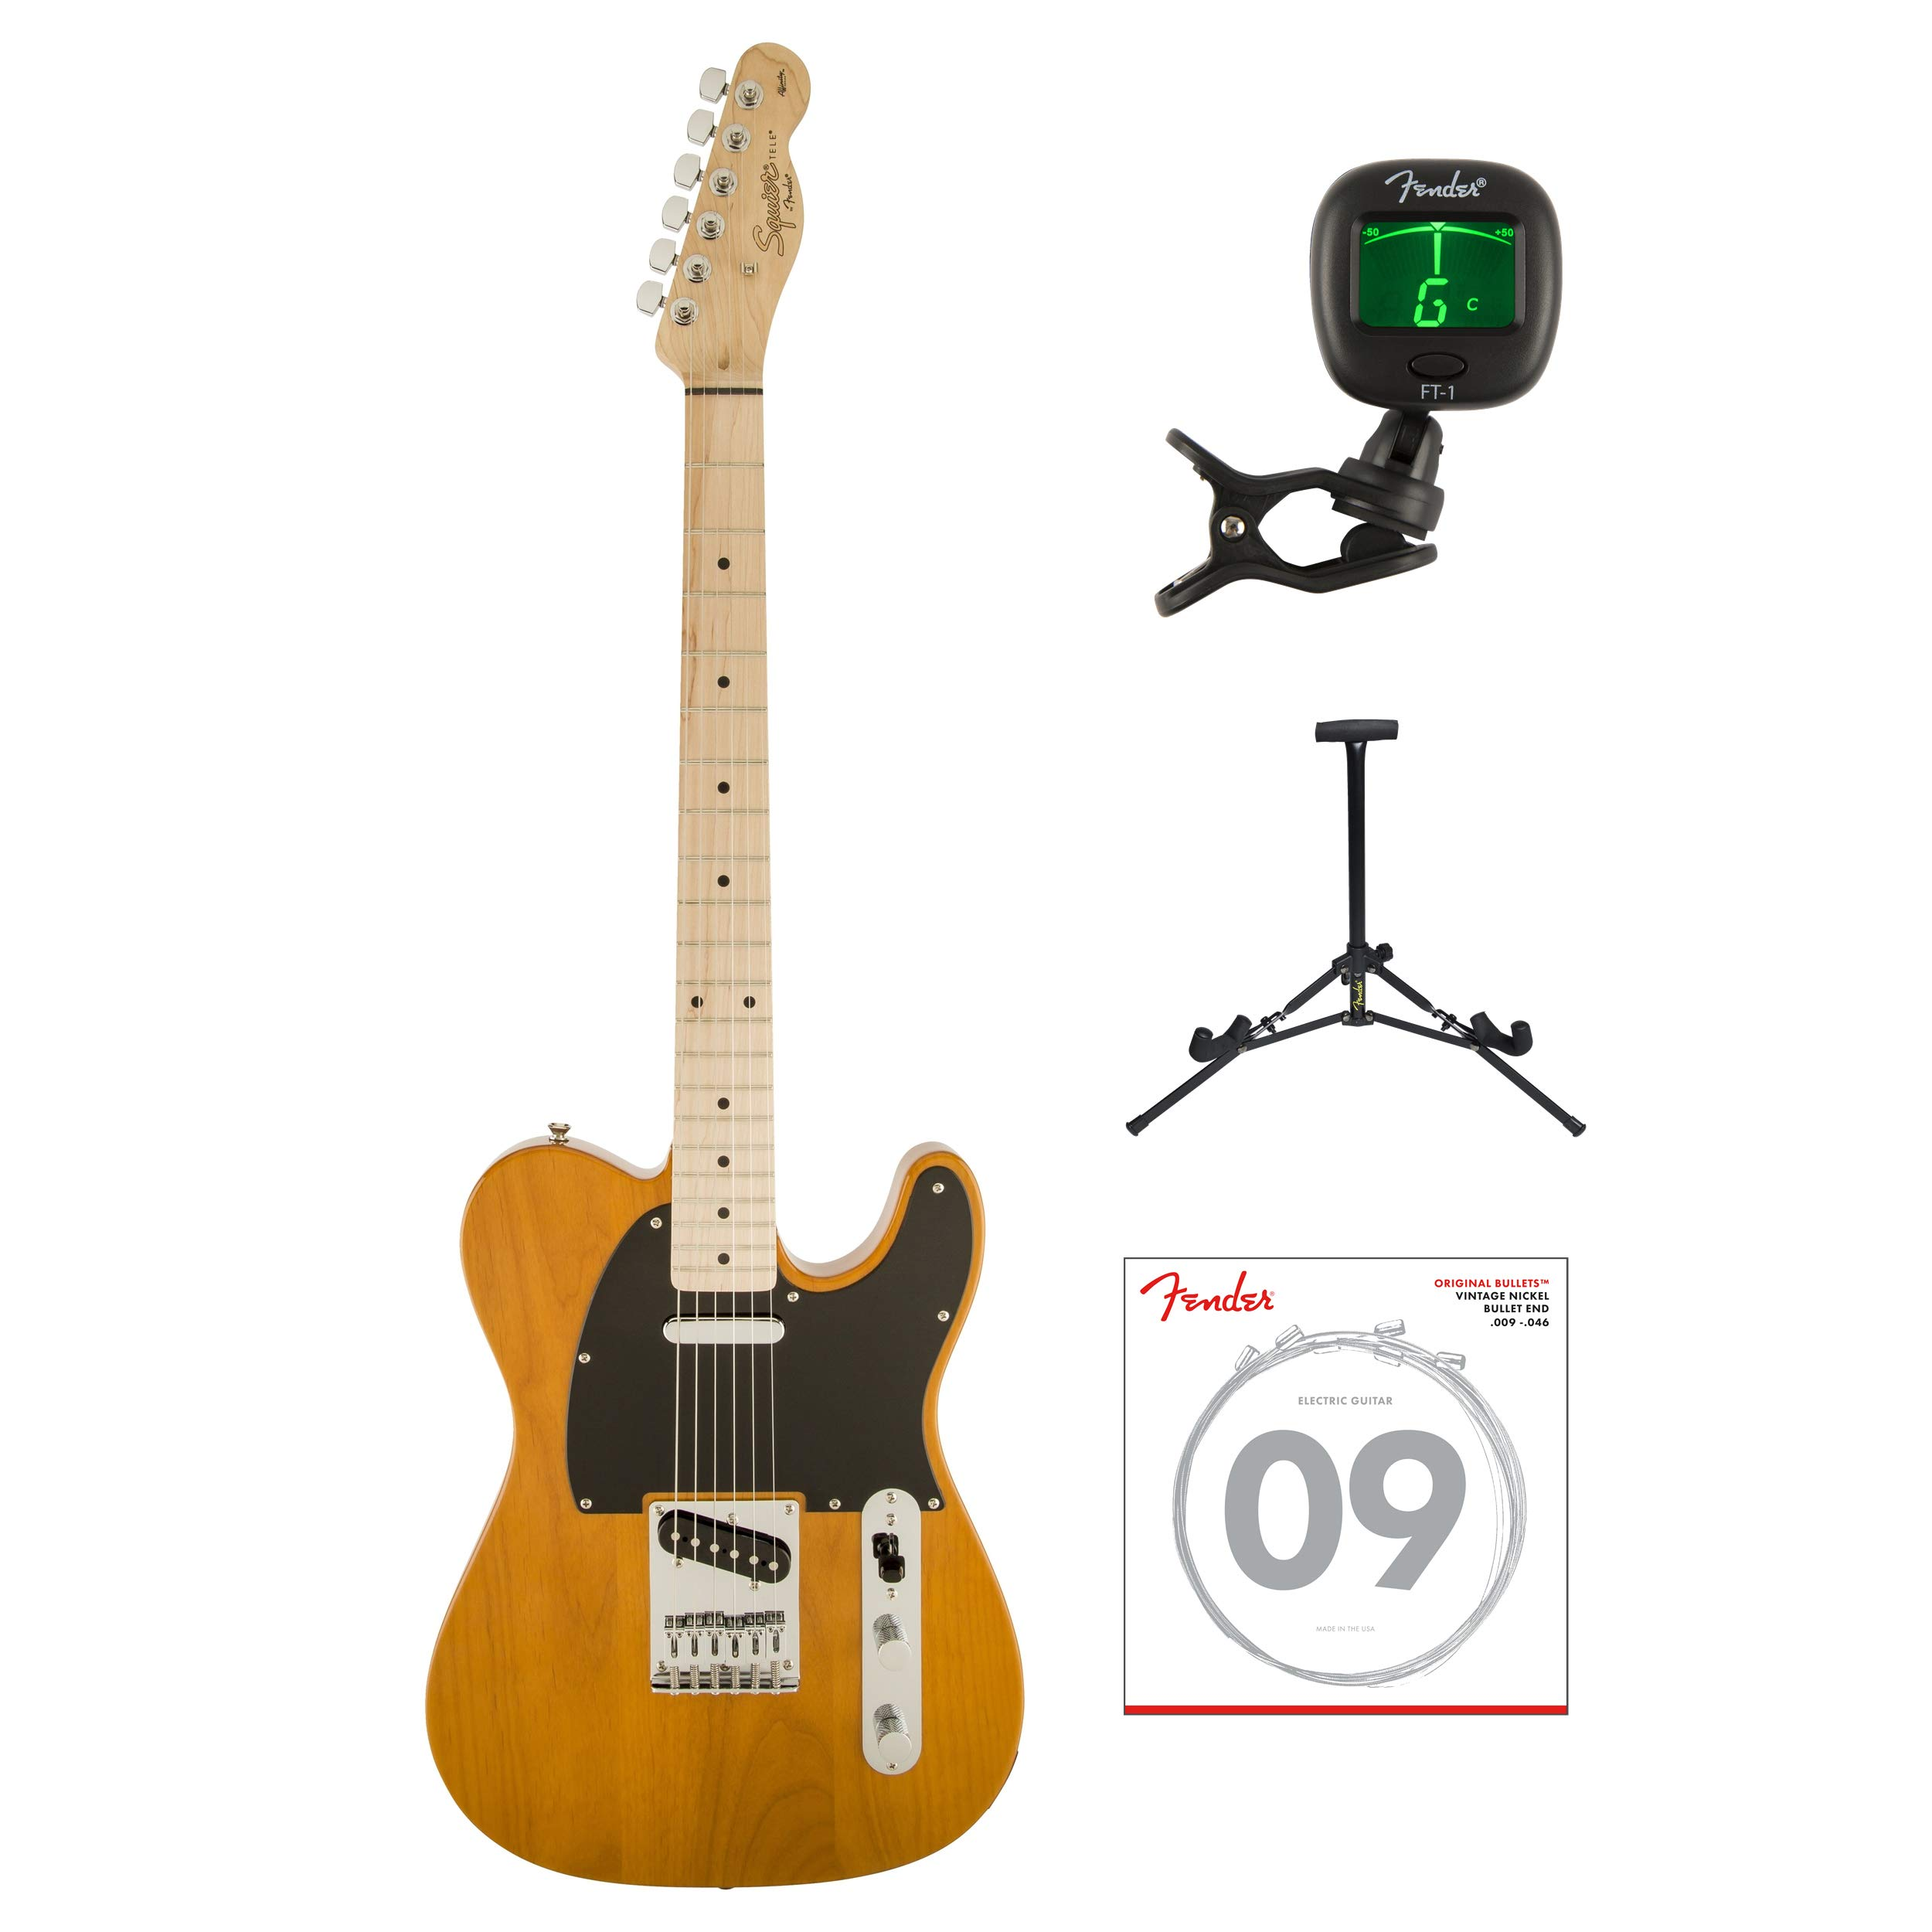 Cheap Fender Squier Affinity Series Telecaster Electric Guitar with Tuner Strings & Stand (Butterscotch Blonde) Black Friday & Cyber Monday 2019